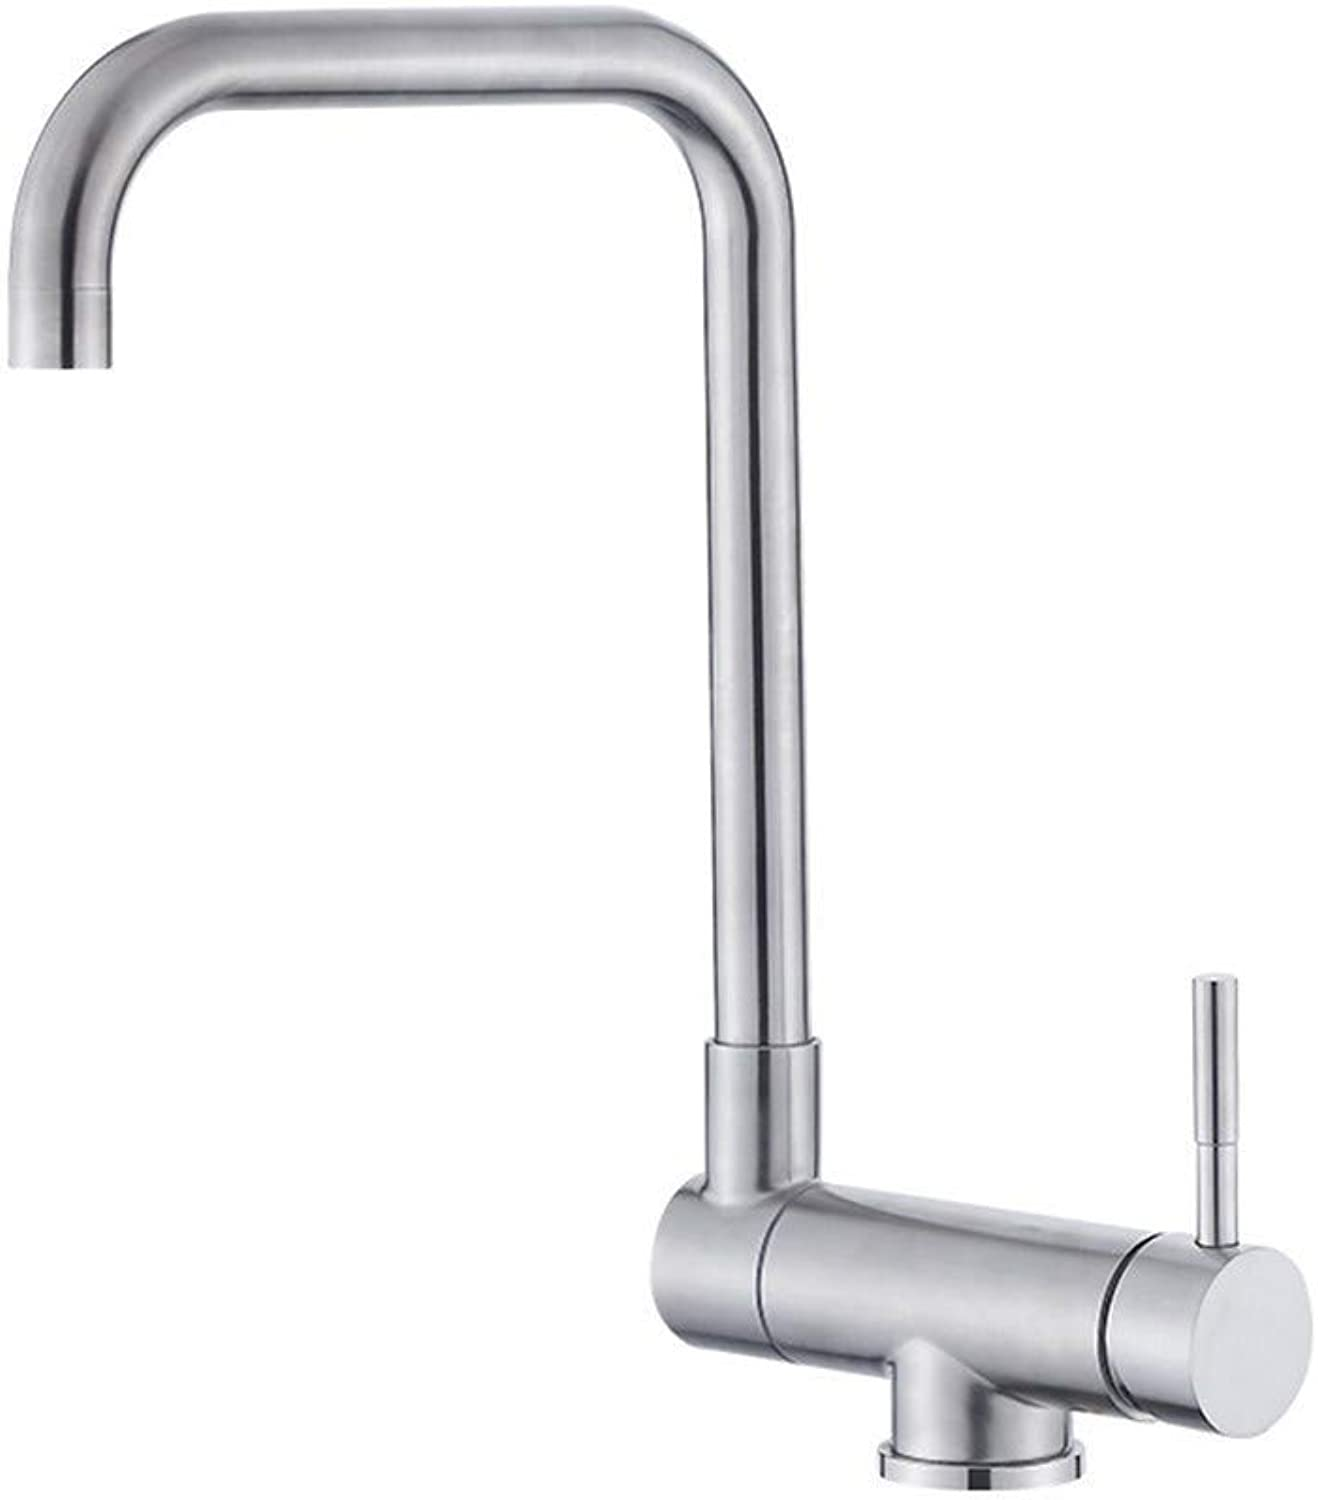 Oudan 304 Stainless Steel Cold Vegetables Basin Kitchen Faucet Mixing Valve 360-Degree redating TankS65-UE6589321575 (color   -, Size   -)